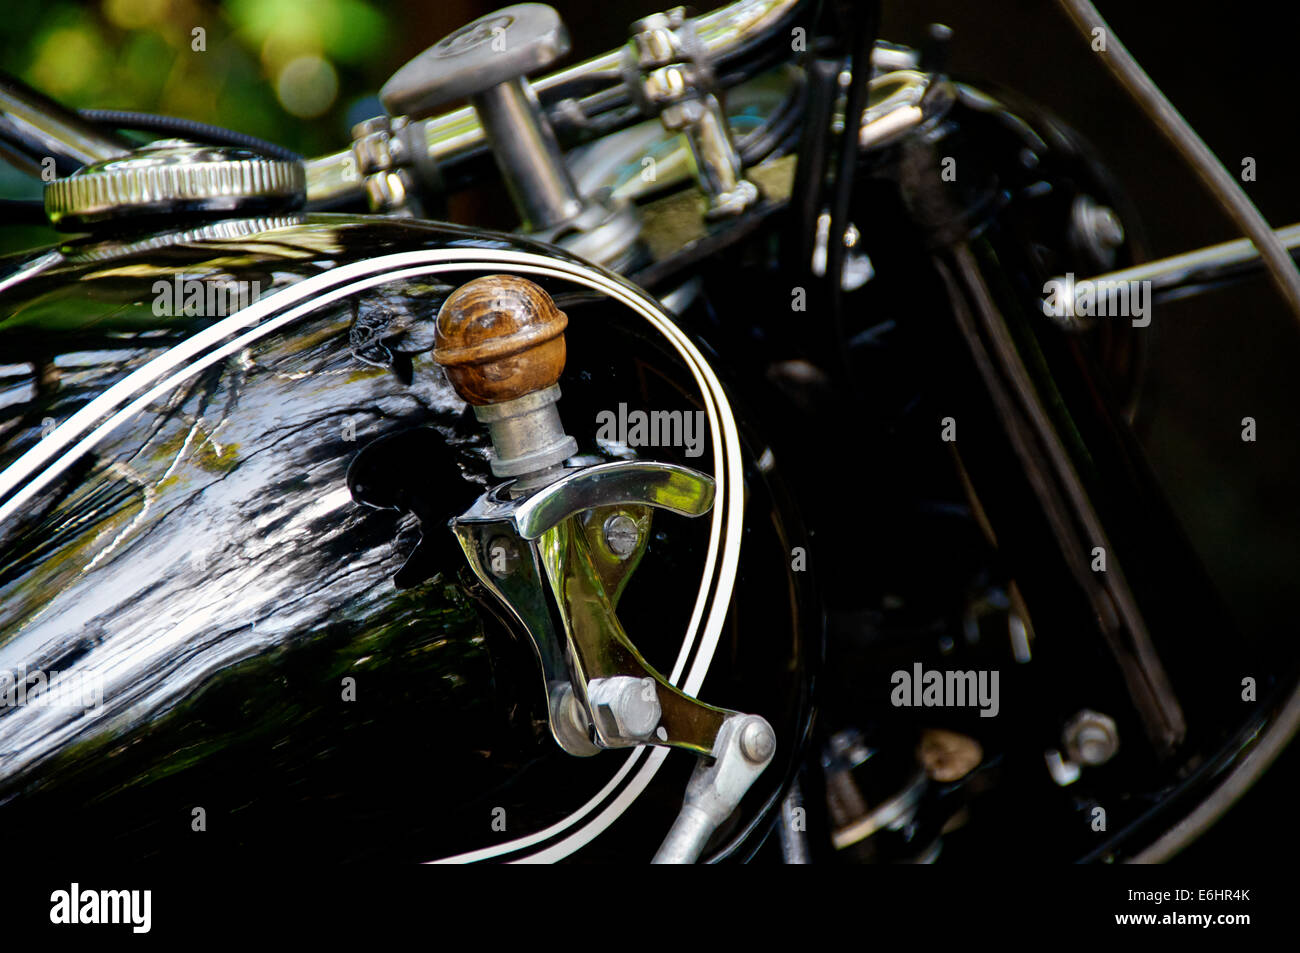 Motorcycle Gas Tank Stock Photos Motorcycle Gas Tank Stock Images